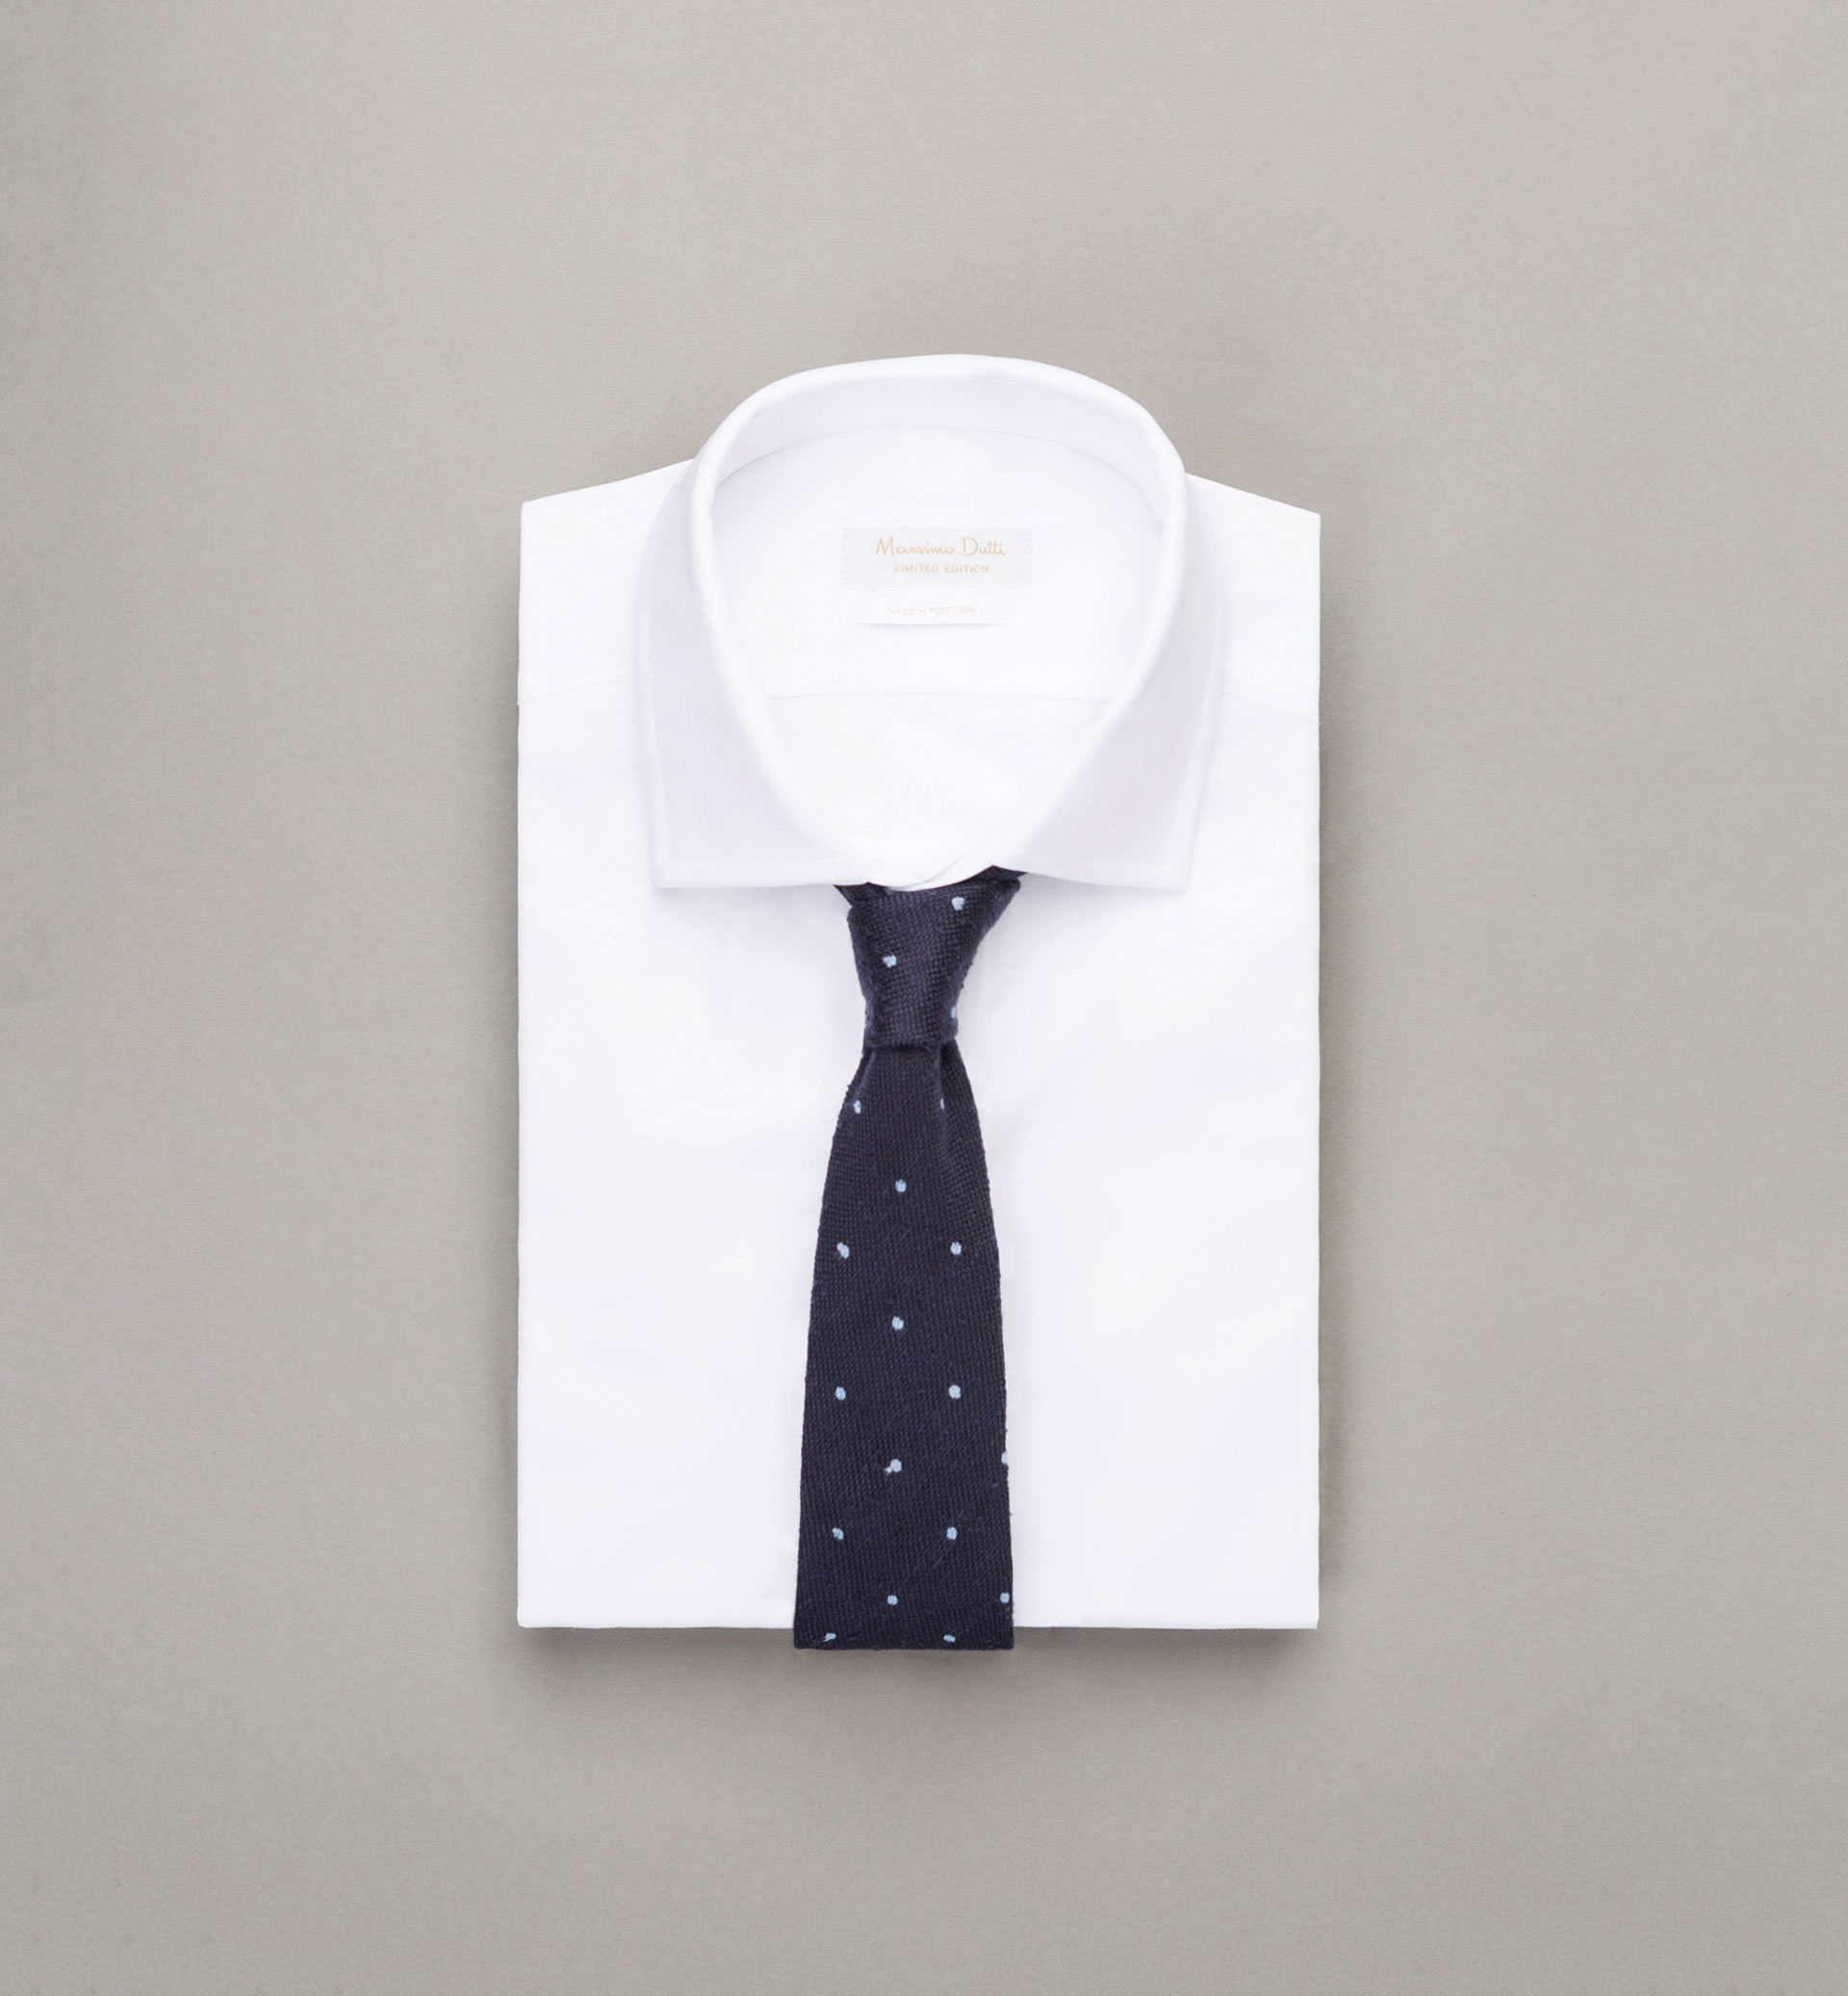 PERSONAL TAILORING SKY BLUE POLKA DOT RUSTIC TIE